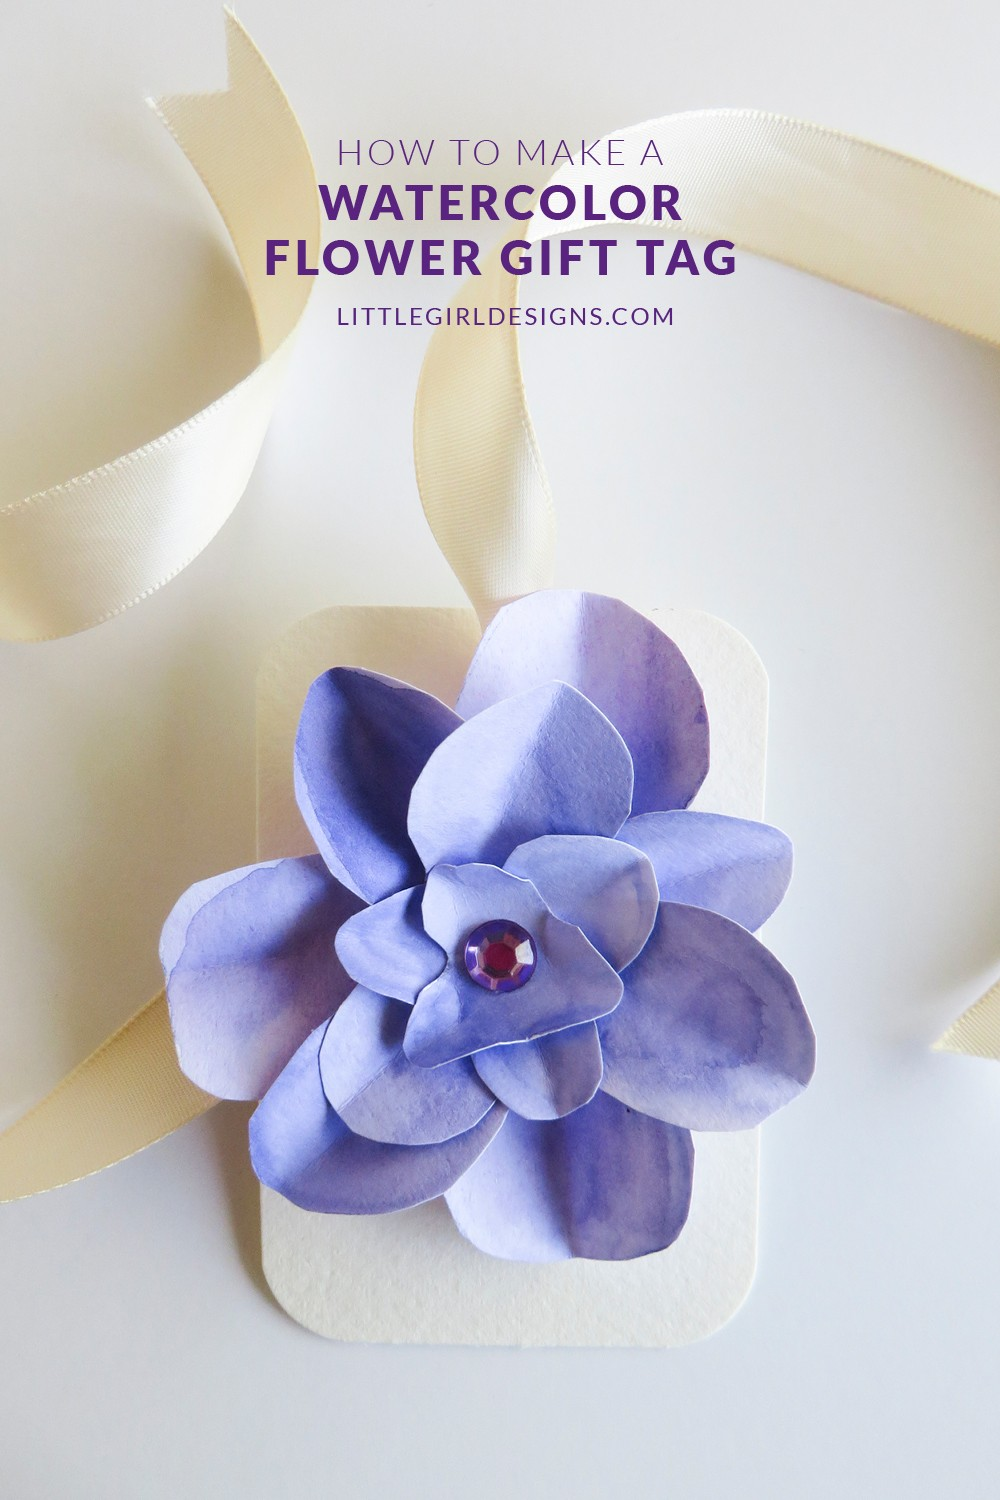 Wedding Gift Tag Maker : How to Make a Watercolor Flower Gift Tag - Guest post on CreativeKKids ...